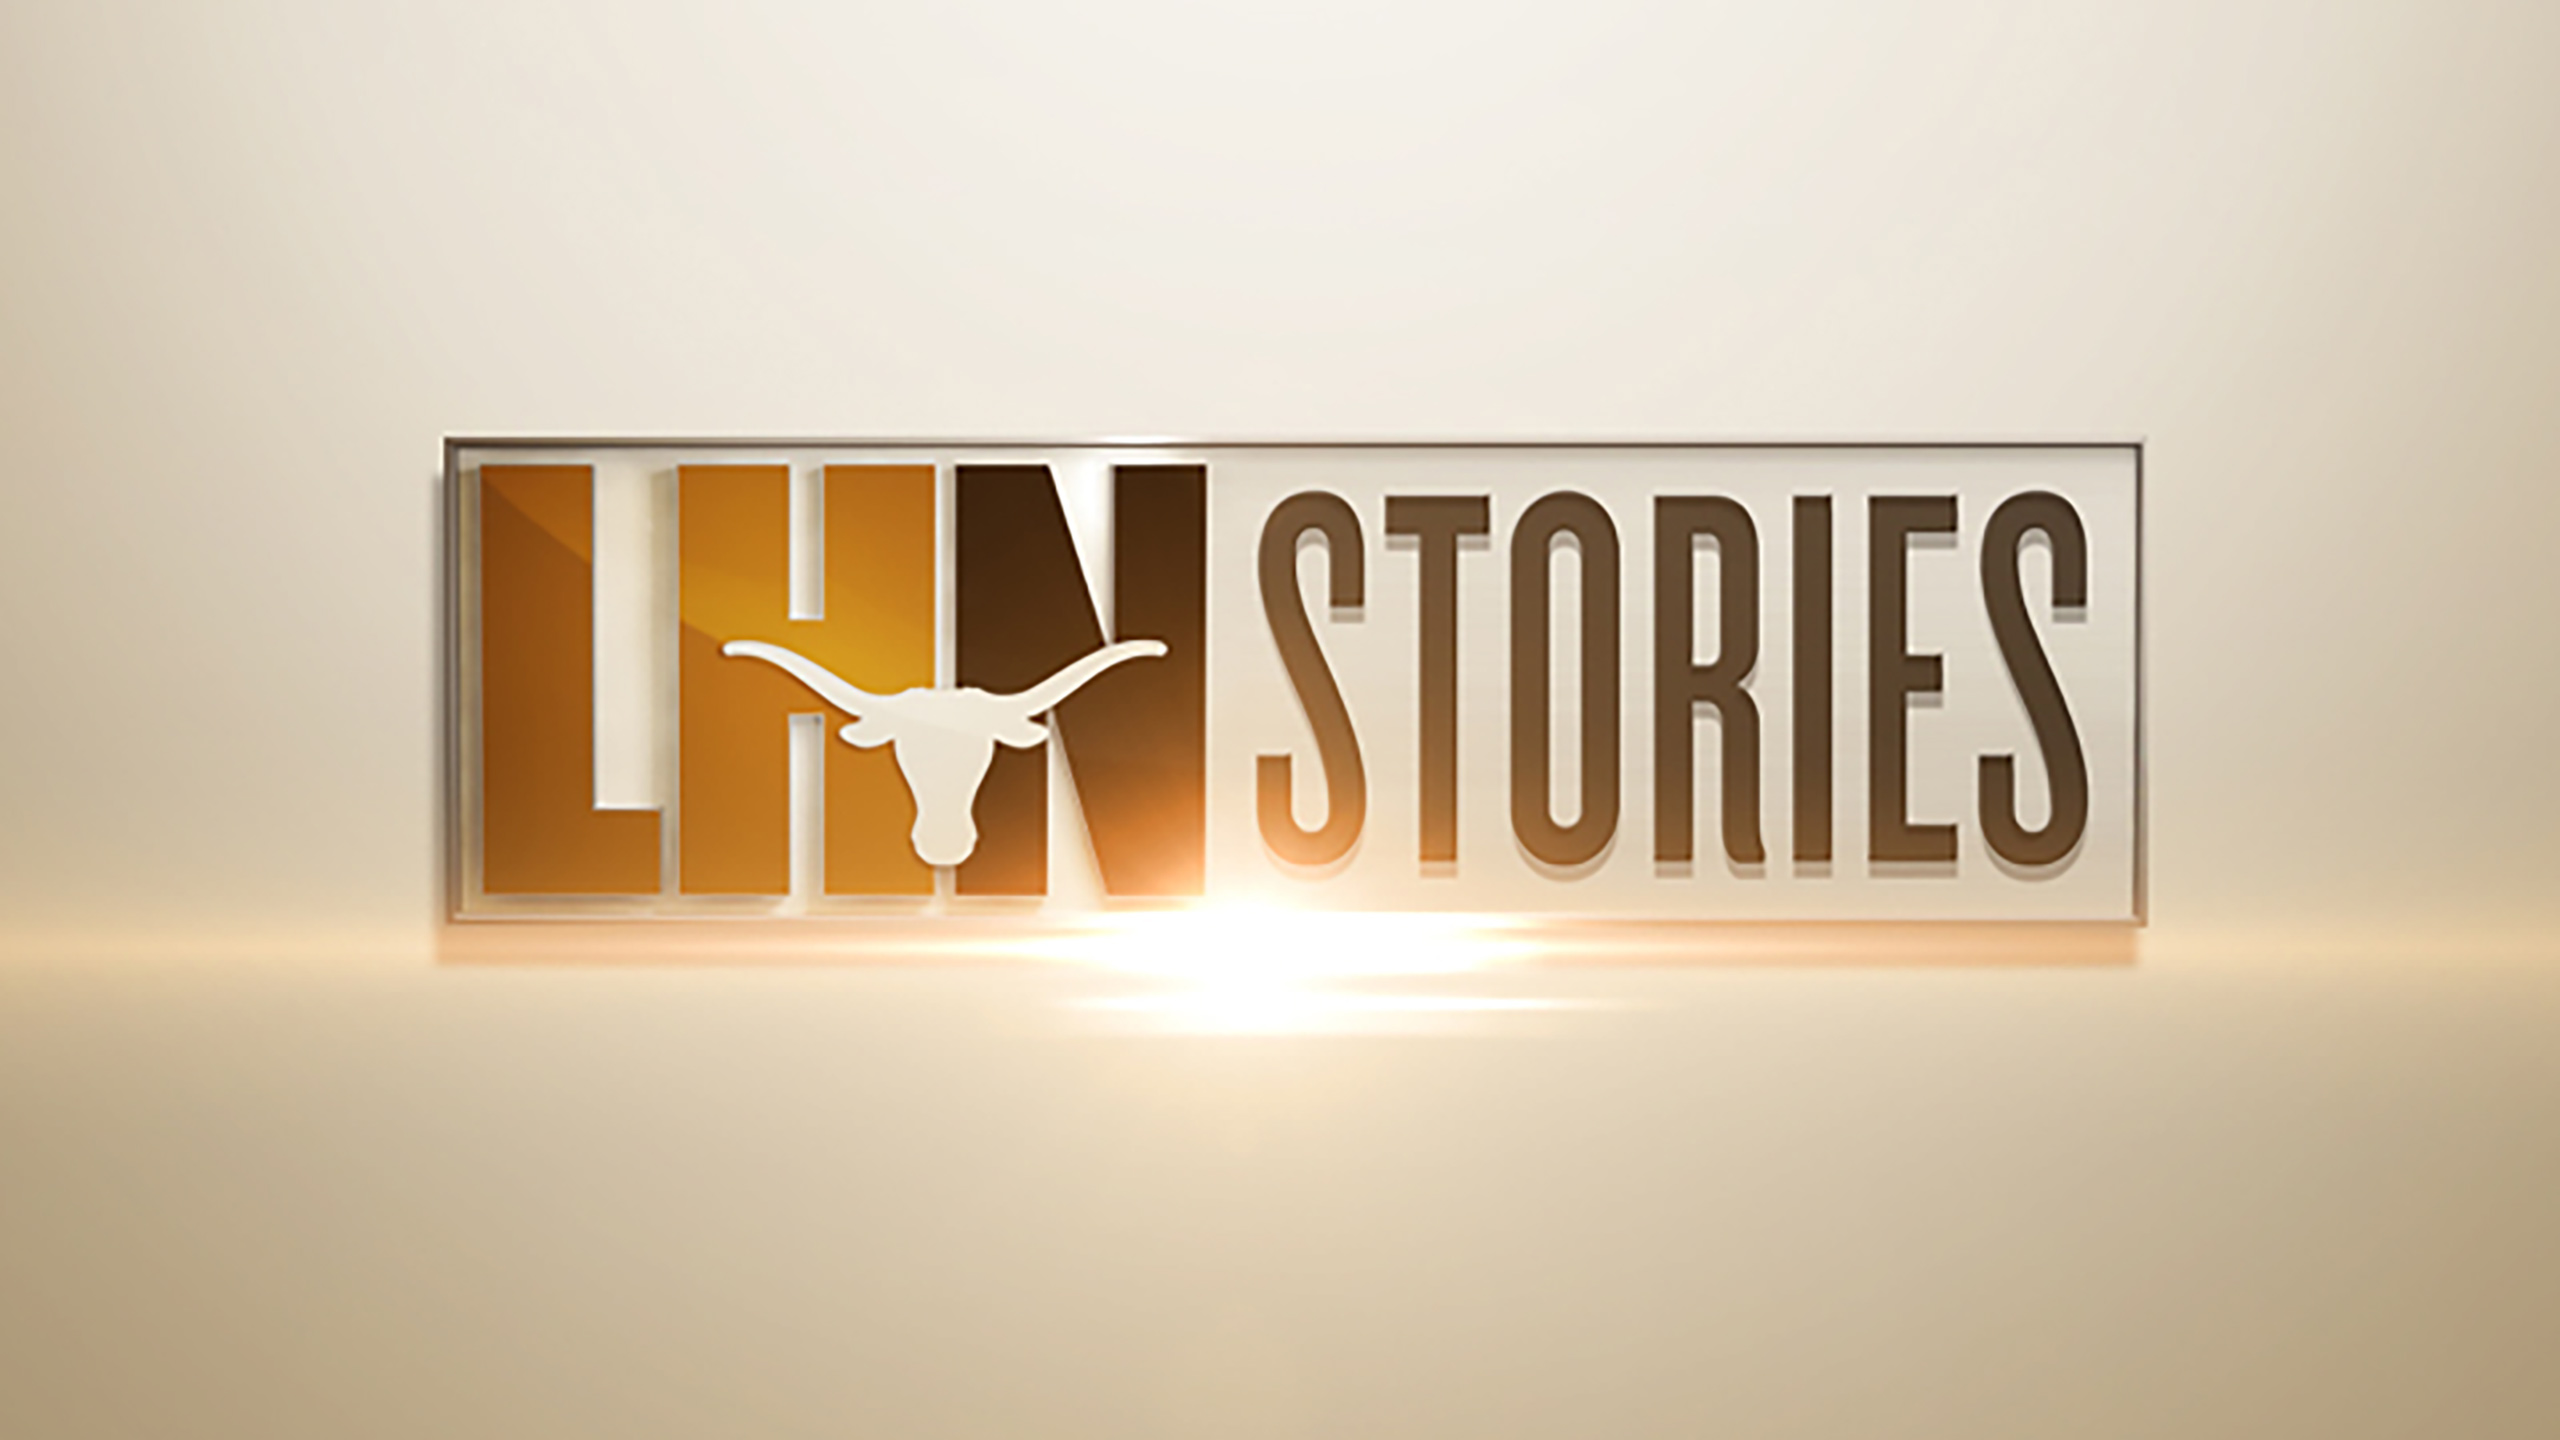 LHN Stories XI